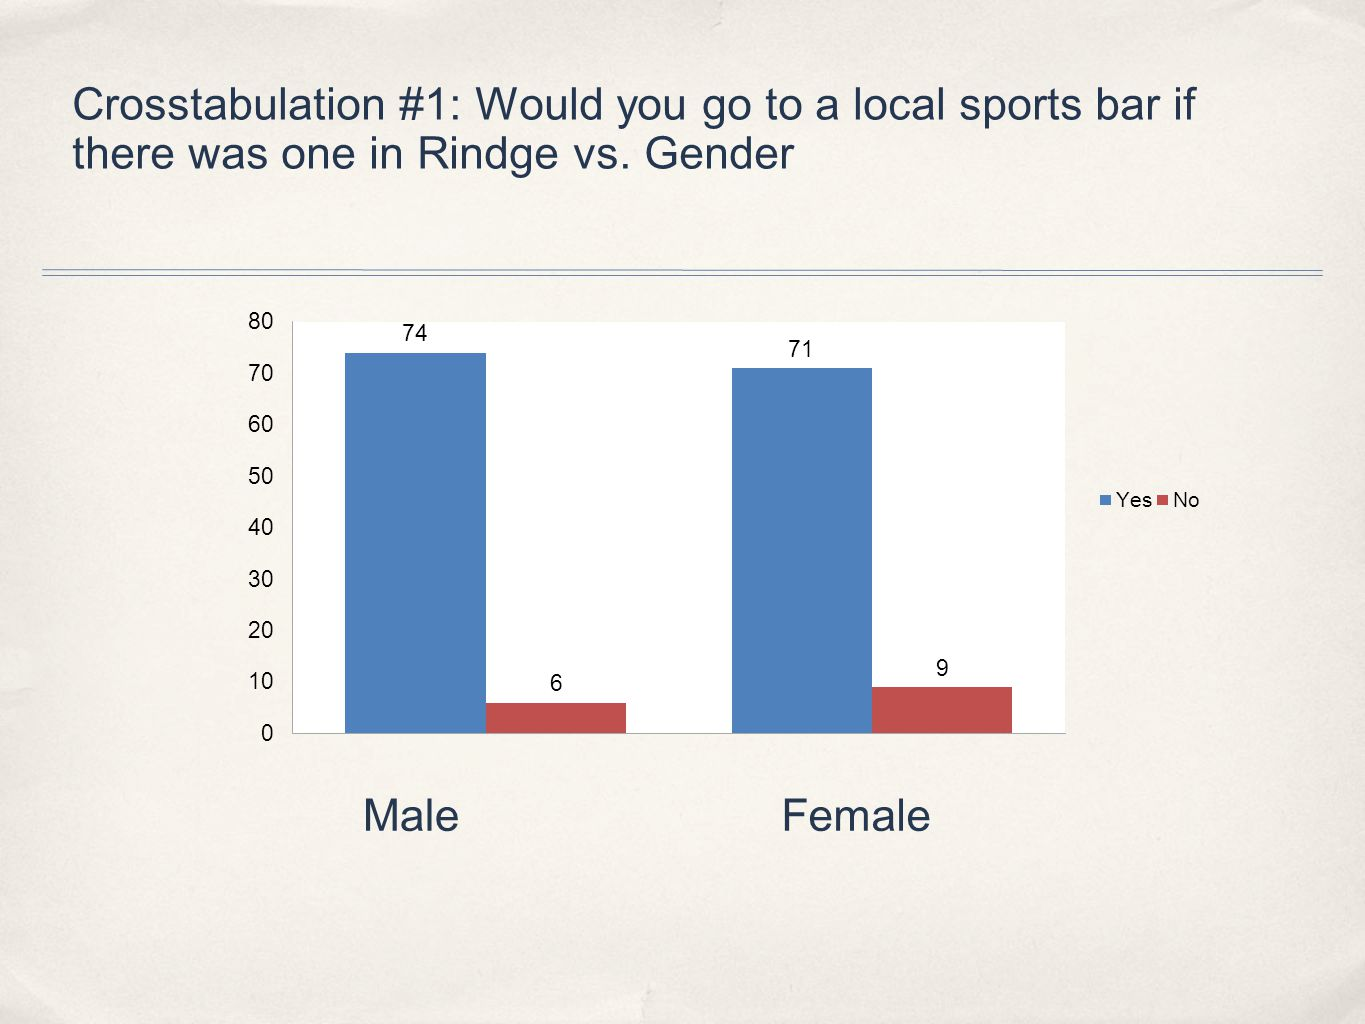 Crosstabulation #1: Would you go to a local sports bar if there was one in Rindge vs.